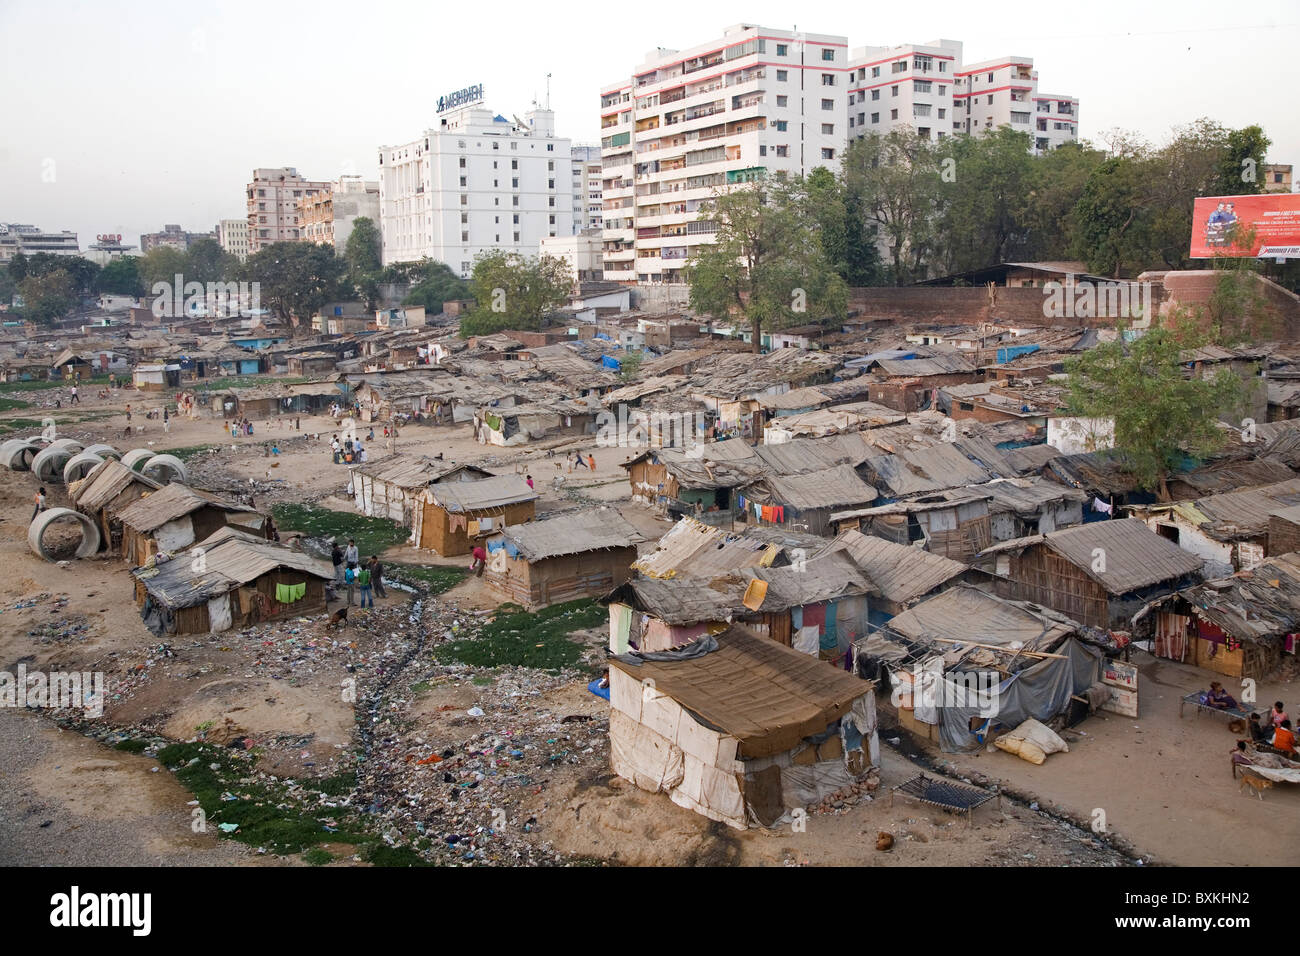 Slums in Ahmedabad, Gujarat. - Stock Image